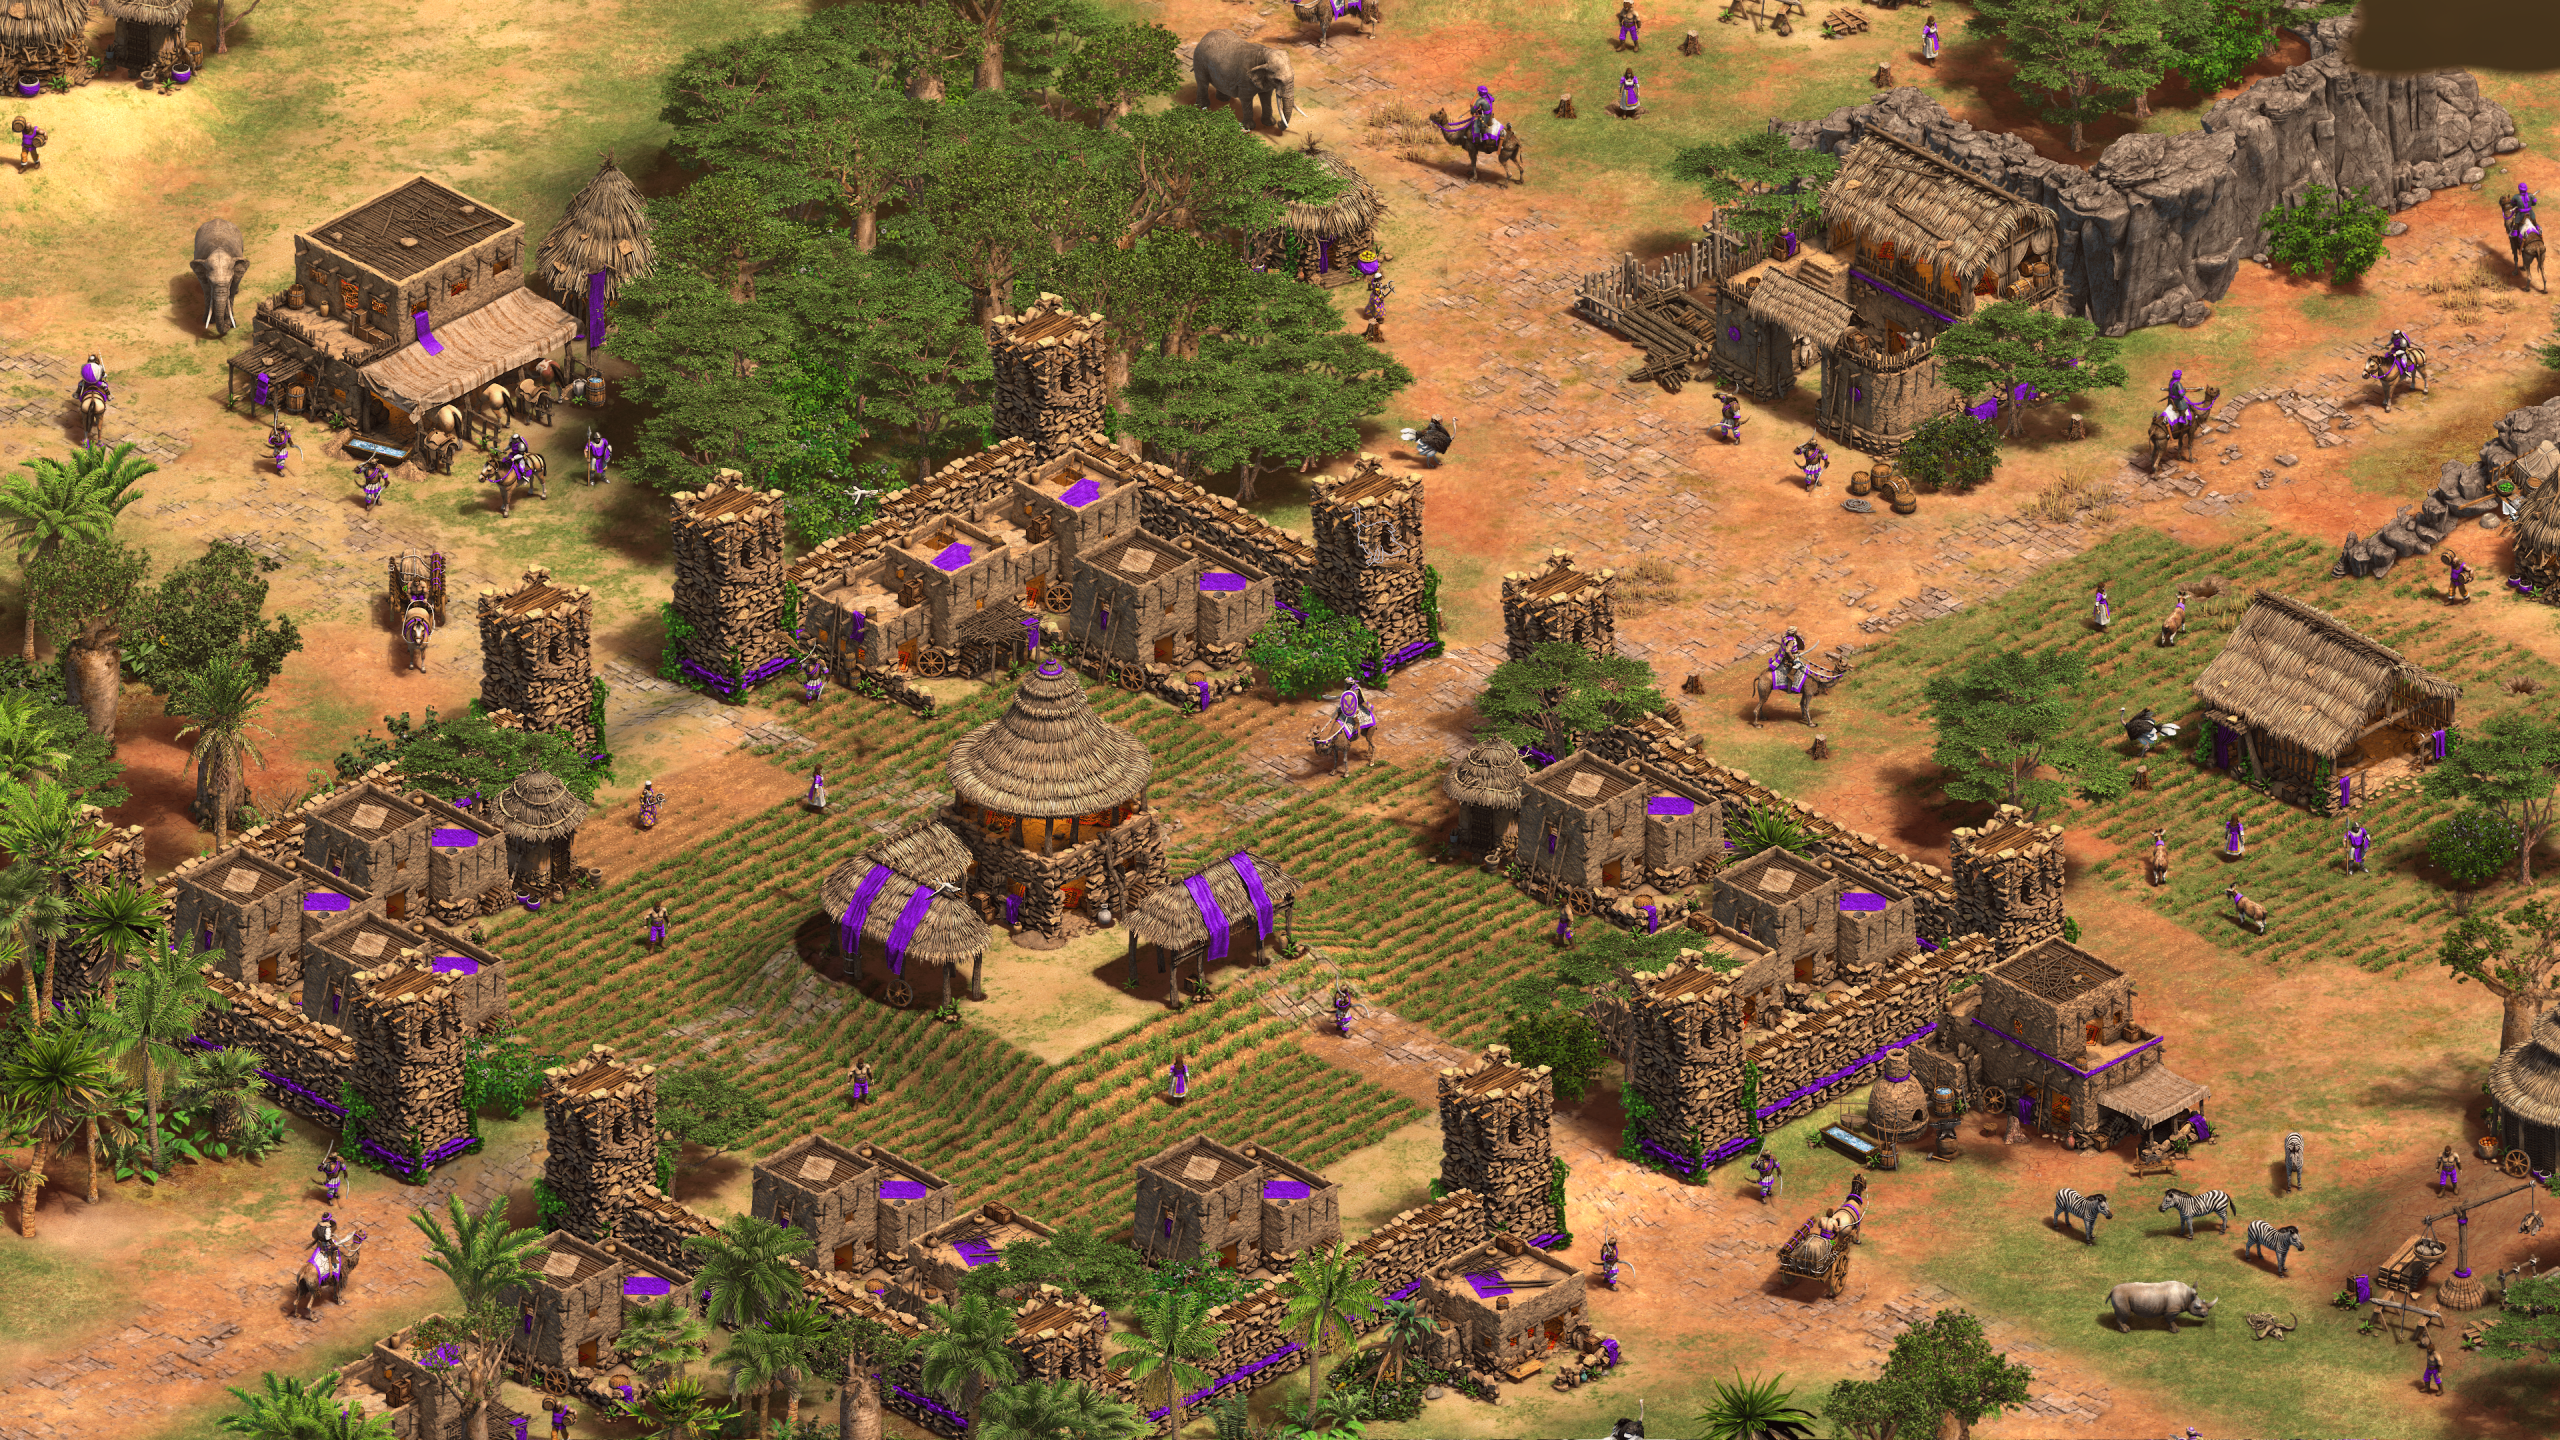 Malians in Age of Empires II: Definitive Edition